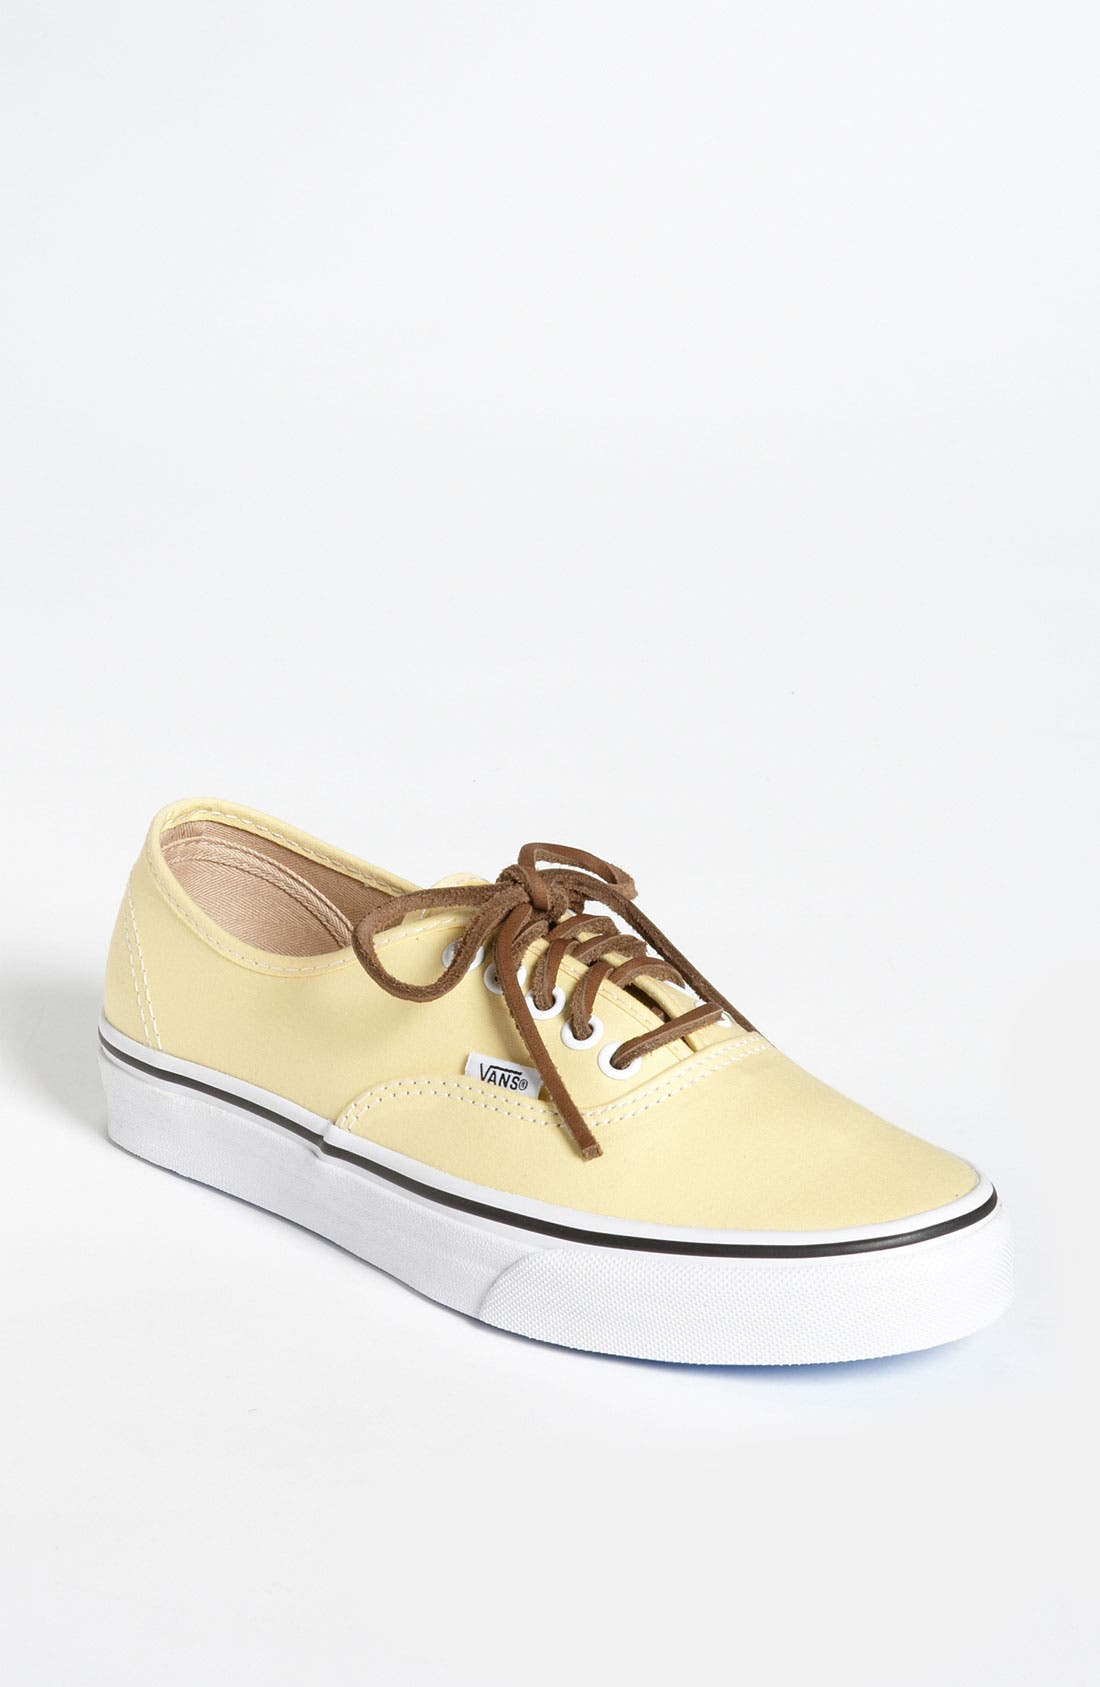 Alternate Image 1 Selected - Vans 'Authentic' Twill Sneaker (Women)